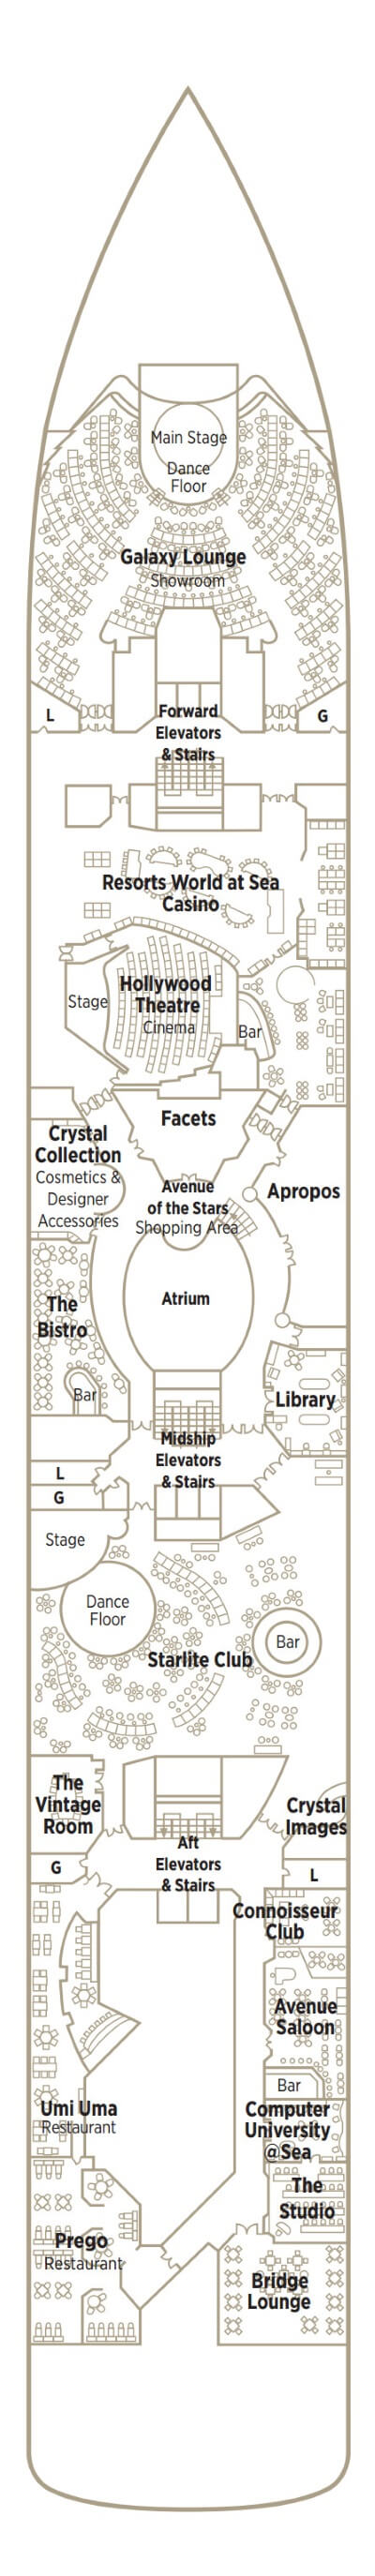 Crystal Symphony Deck 6 Tiffany layout